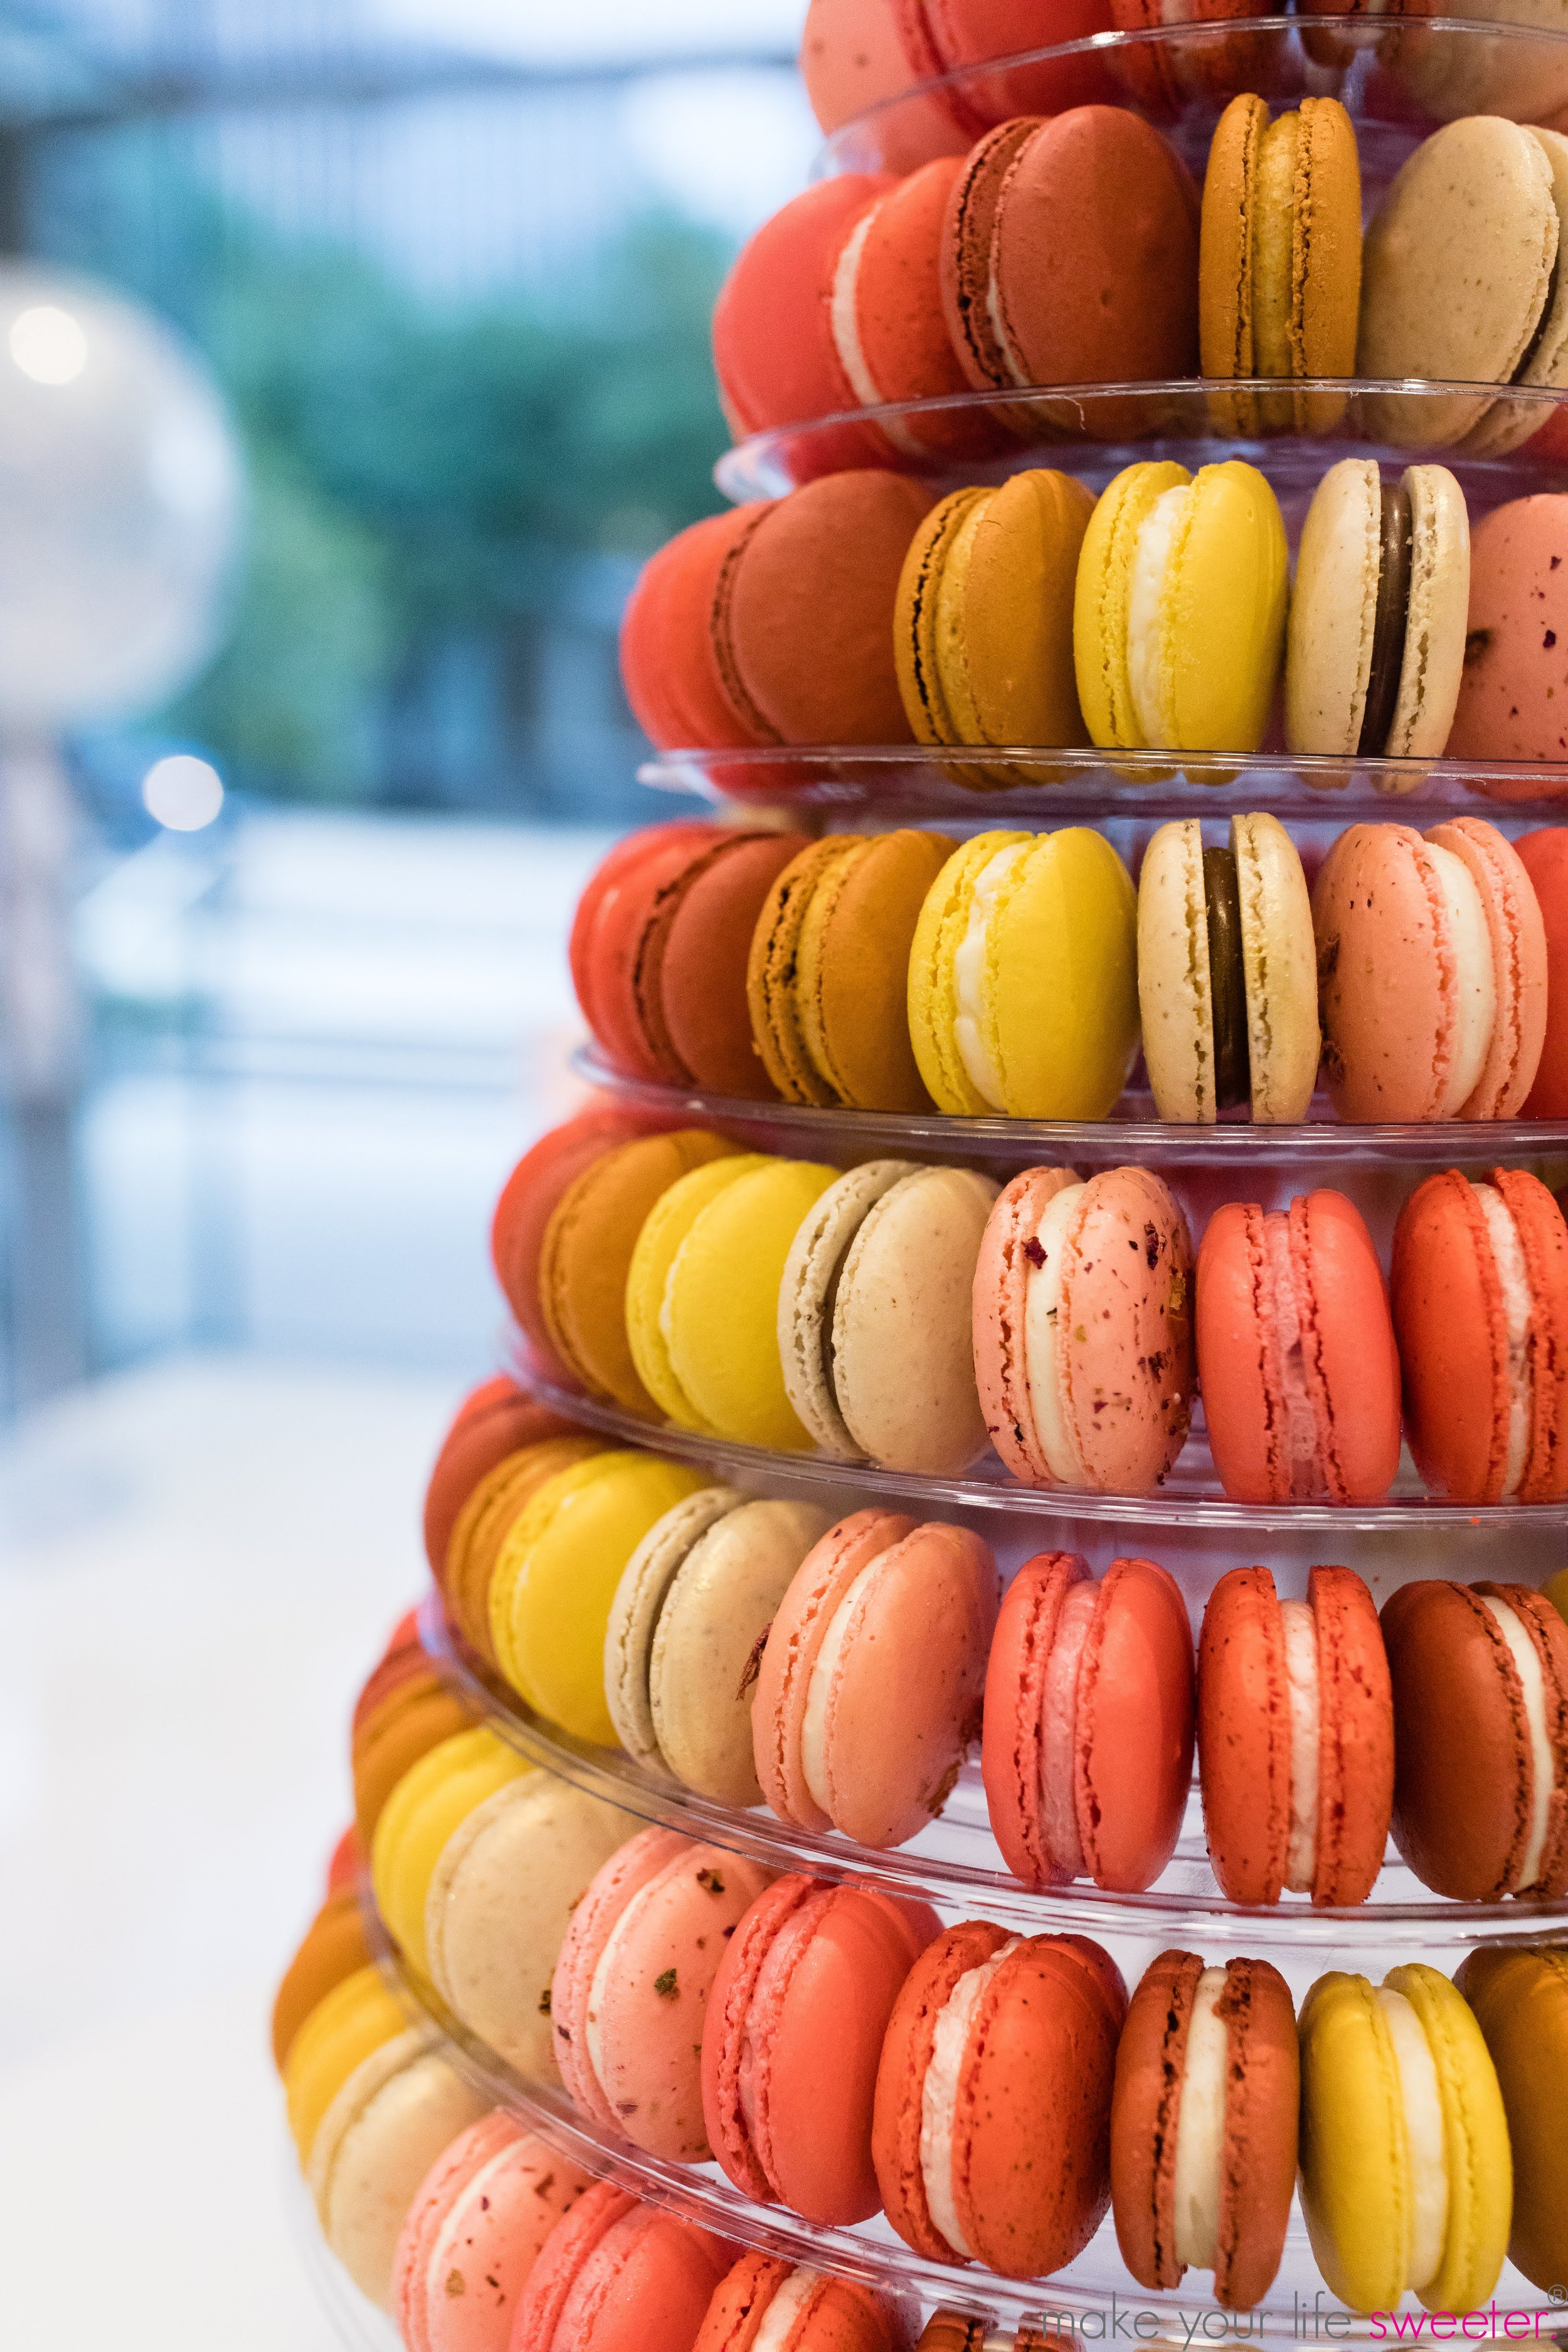 Make Your Life Sweeter Events: PWC Grand Opening - La Mod Macarons Tasting Bar